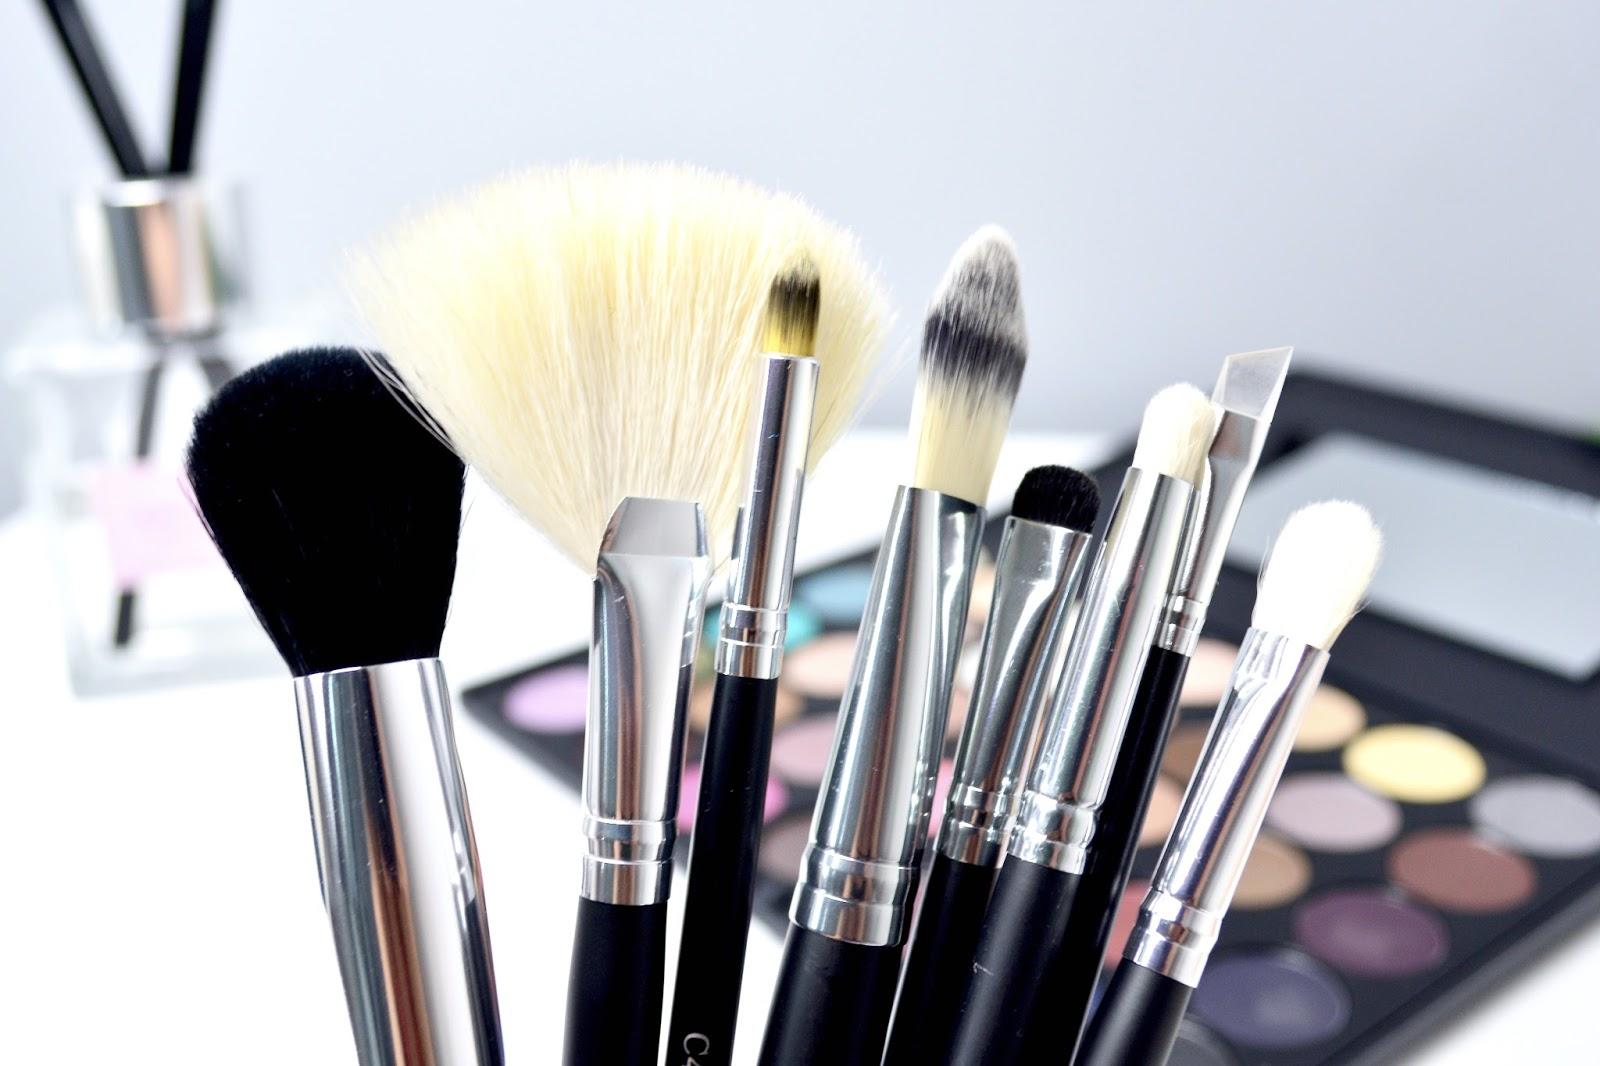 Crown Brush, Crown Brush Brushes, Makeup Brushes, Foundation Brush, Makeup, Highlighter, Contour, Brushes